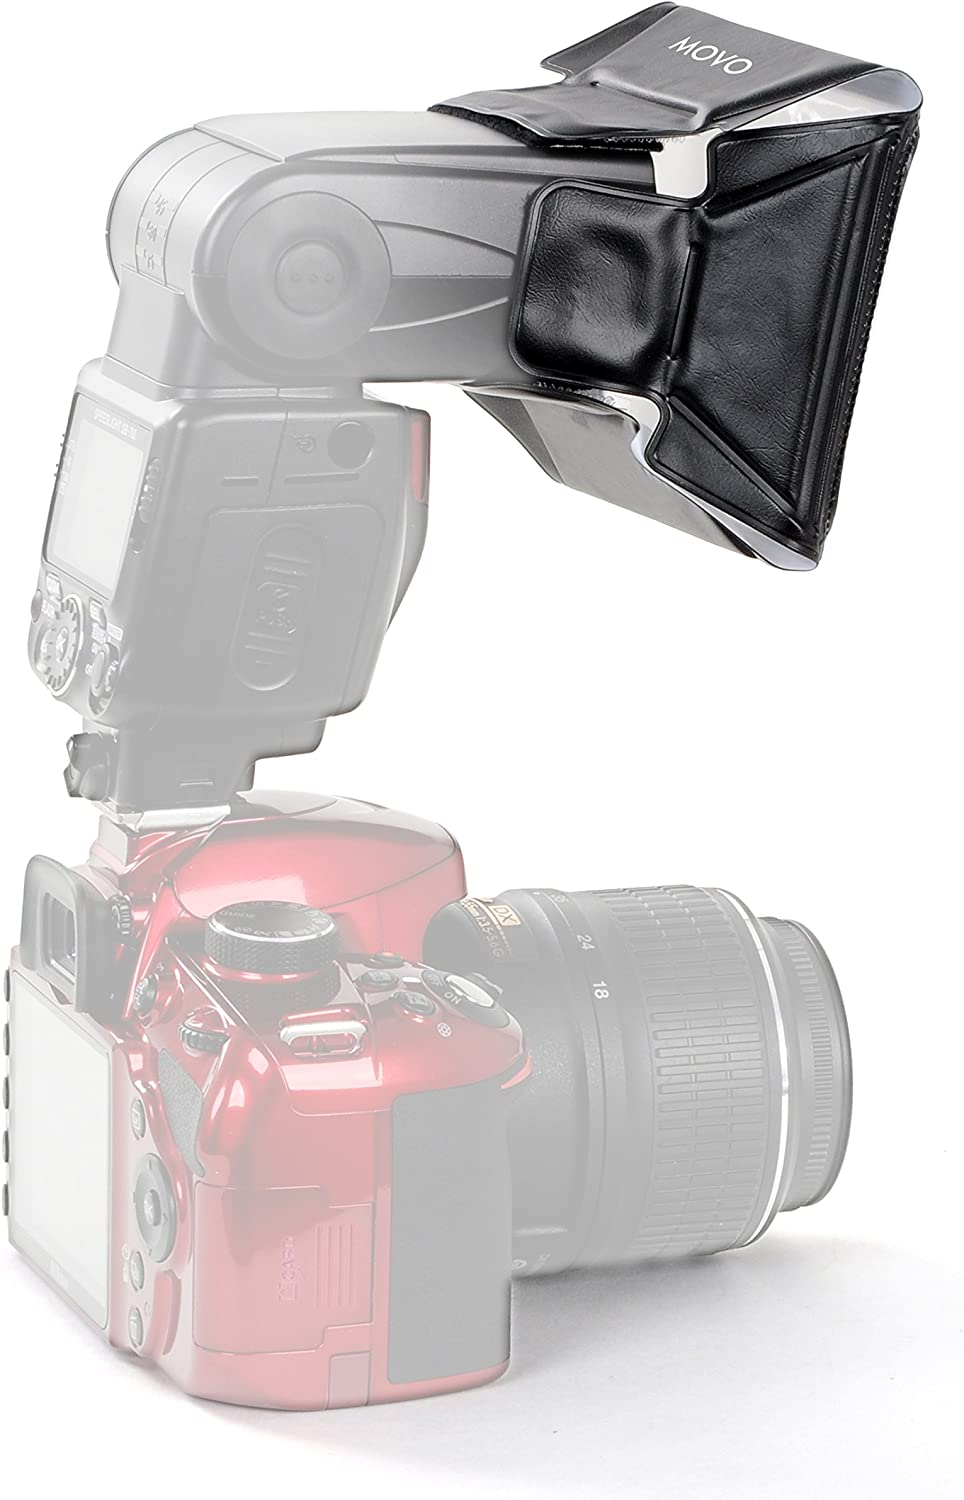 Movo Photo SB16 Universal Mini Softbox Flash Diffuser with 6 Color Gel Kit for External Camera Flashes Size: 9cm X 12cm